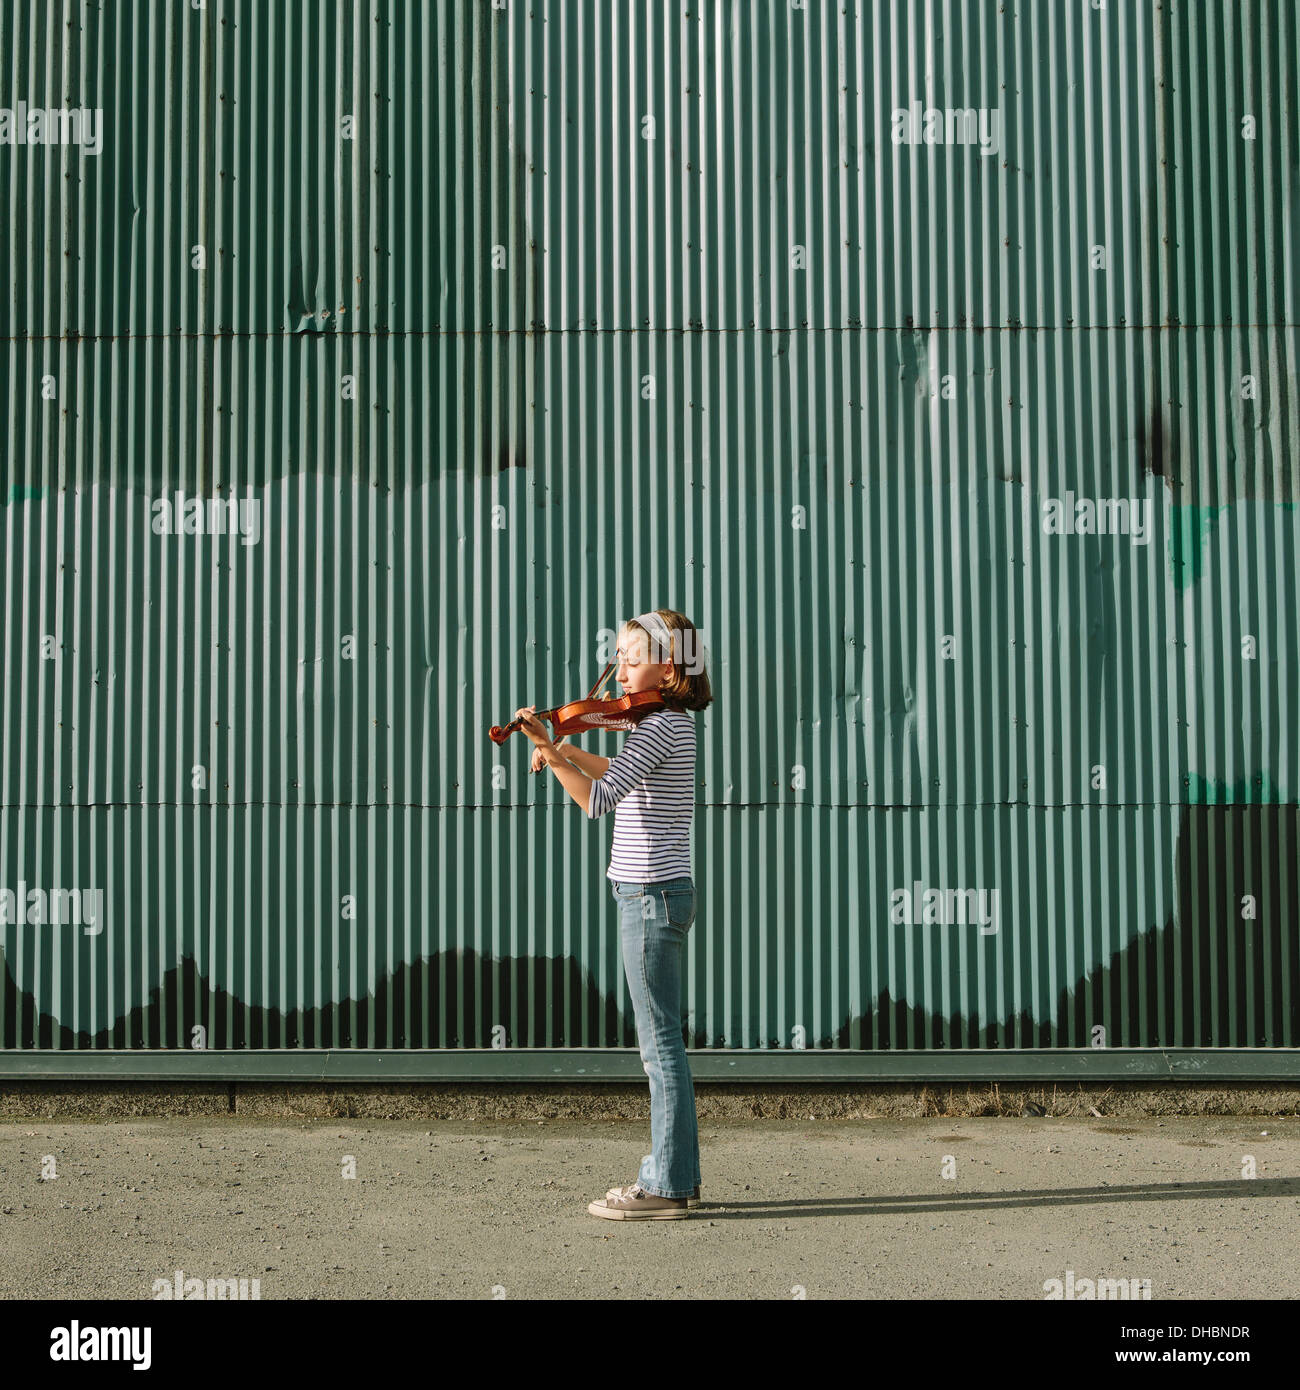 A ten year old girl playing the violin on an urban street. - Stock Image